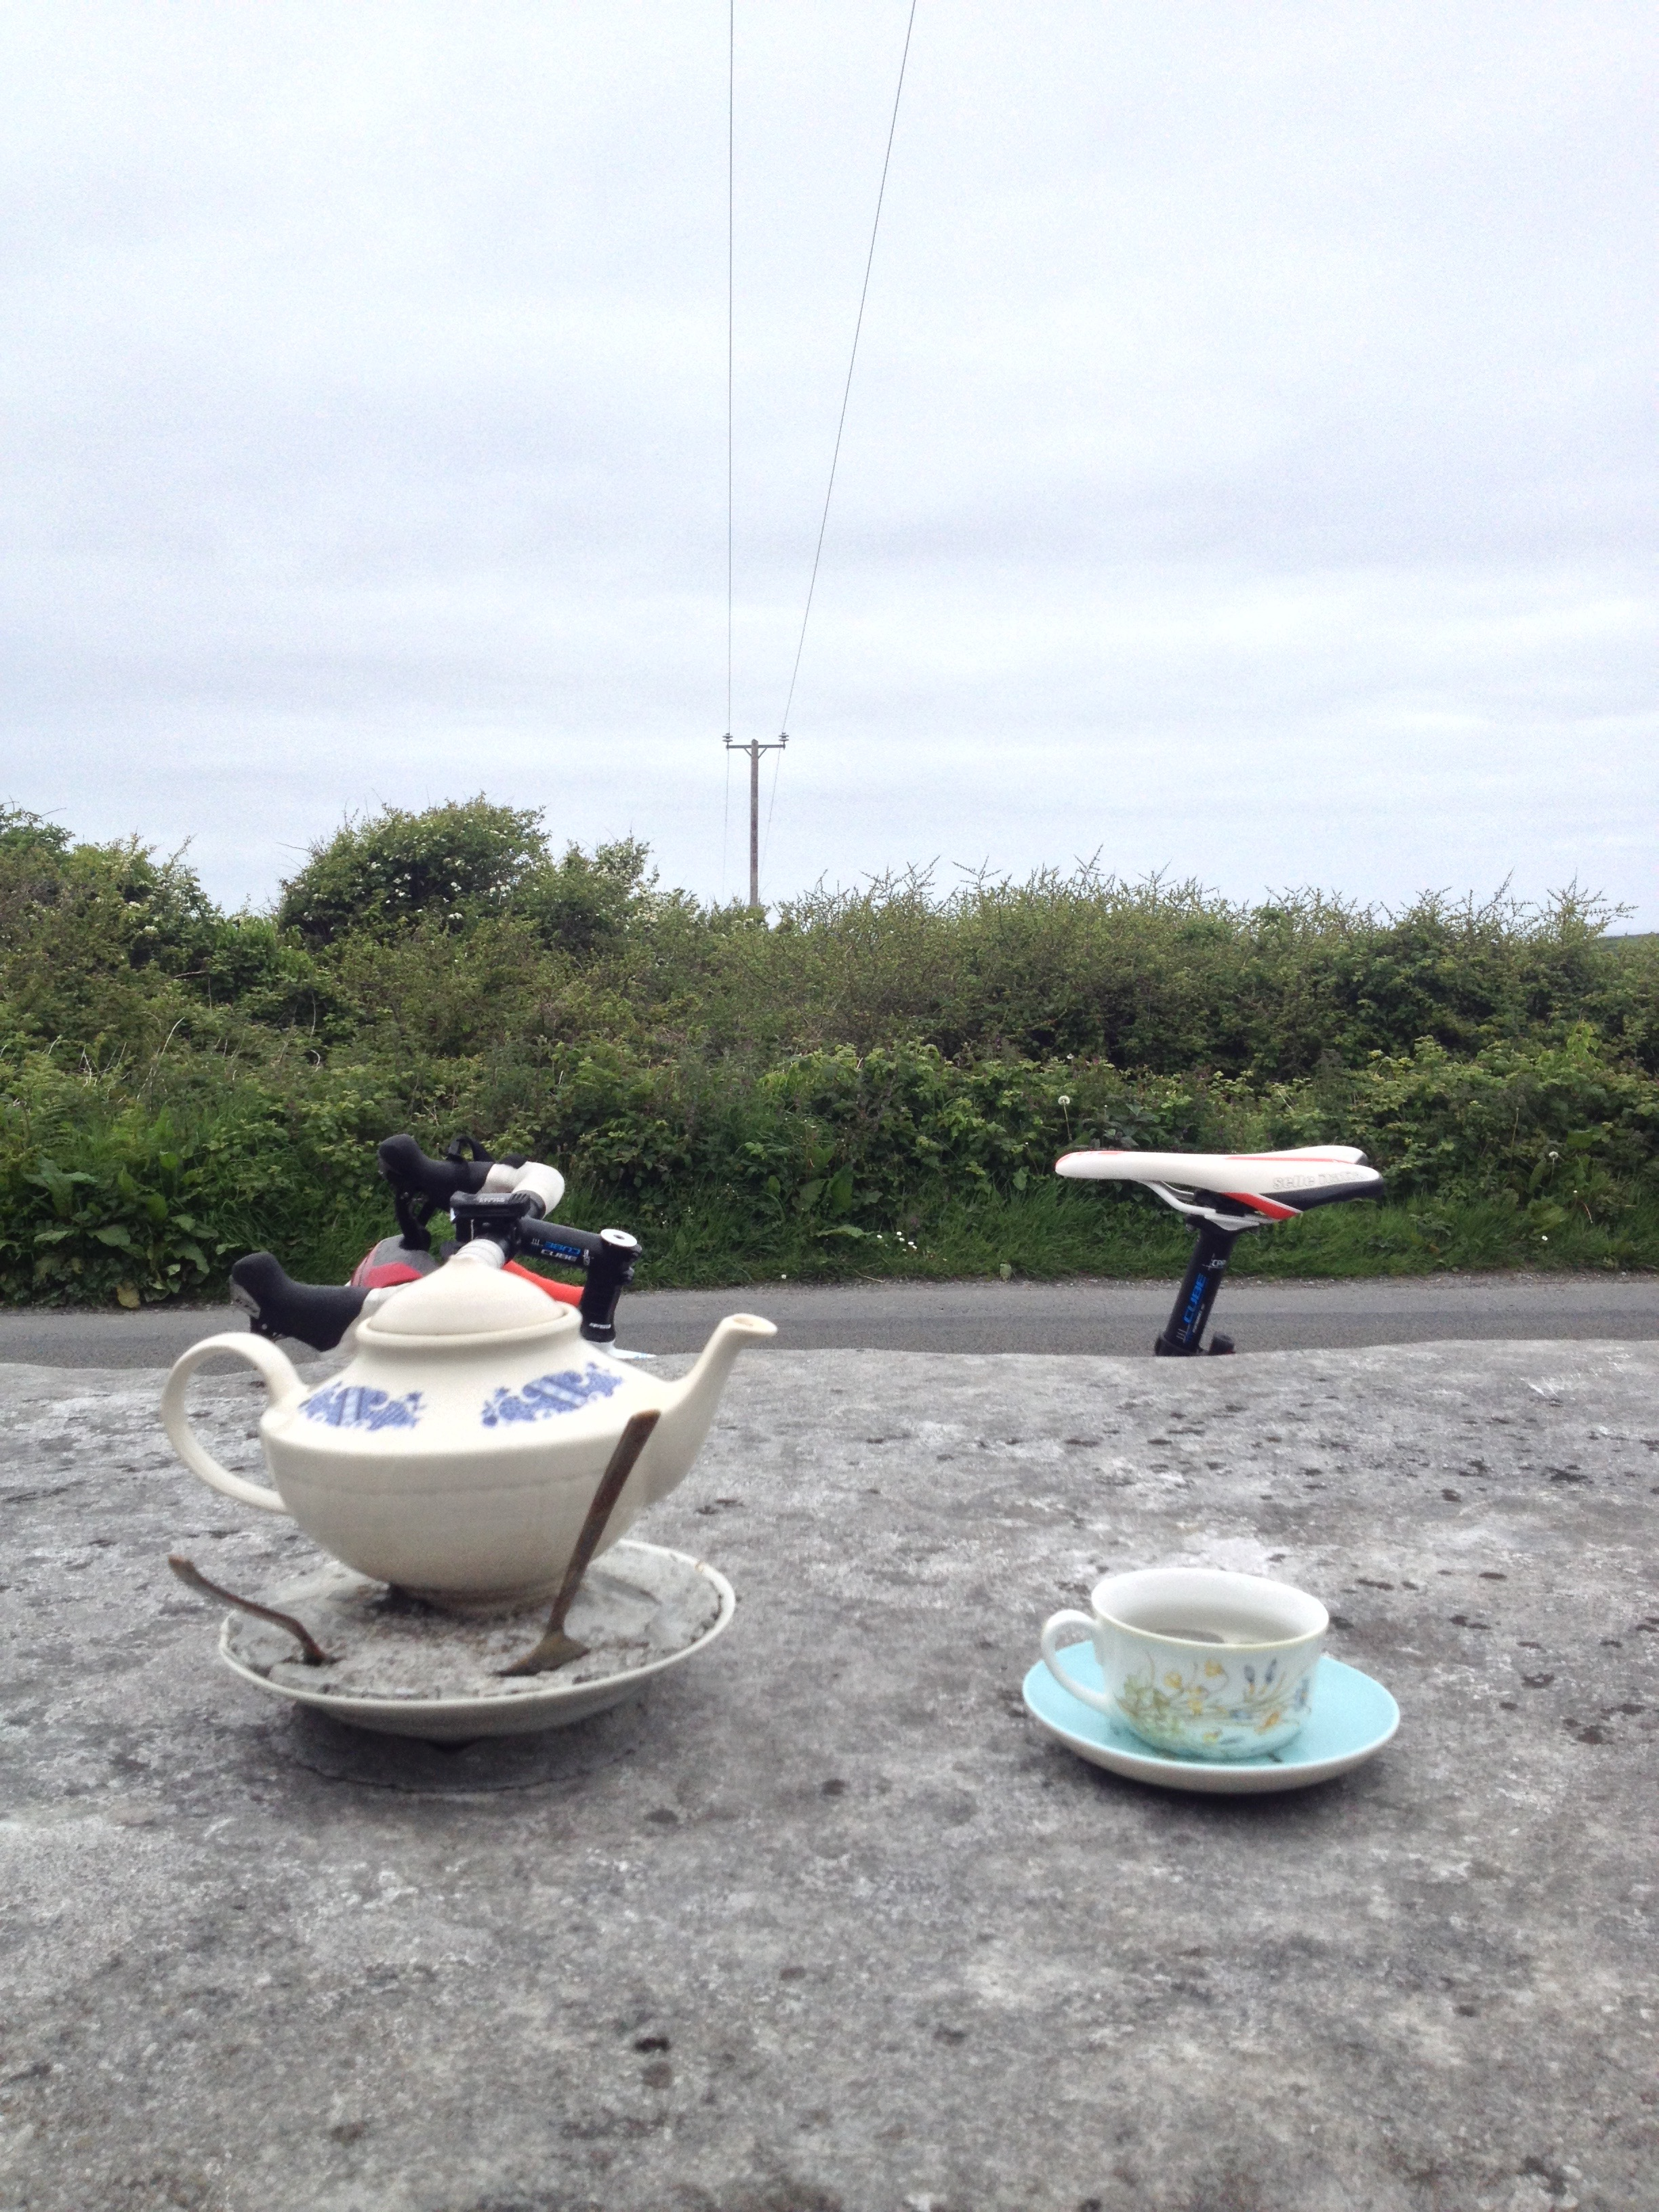 Fanore, Co. Clare - never noticed this completely random road-side ornament before. Anyone know the history?